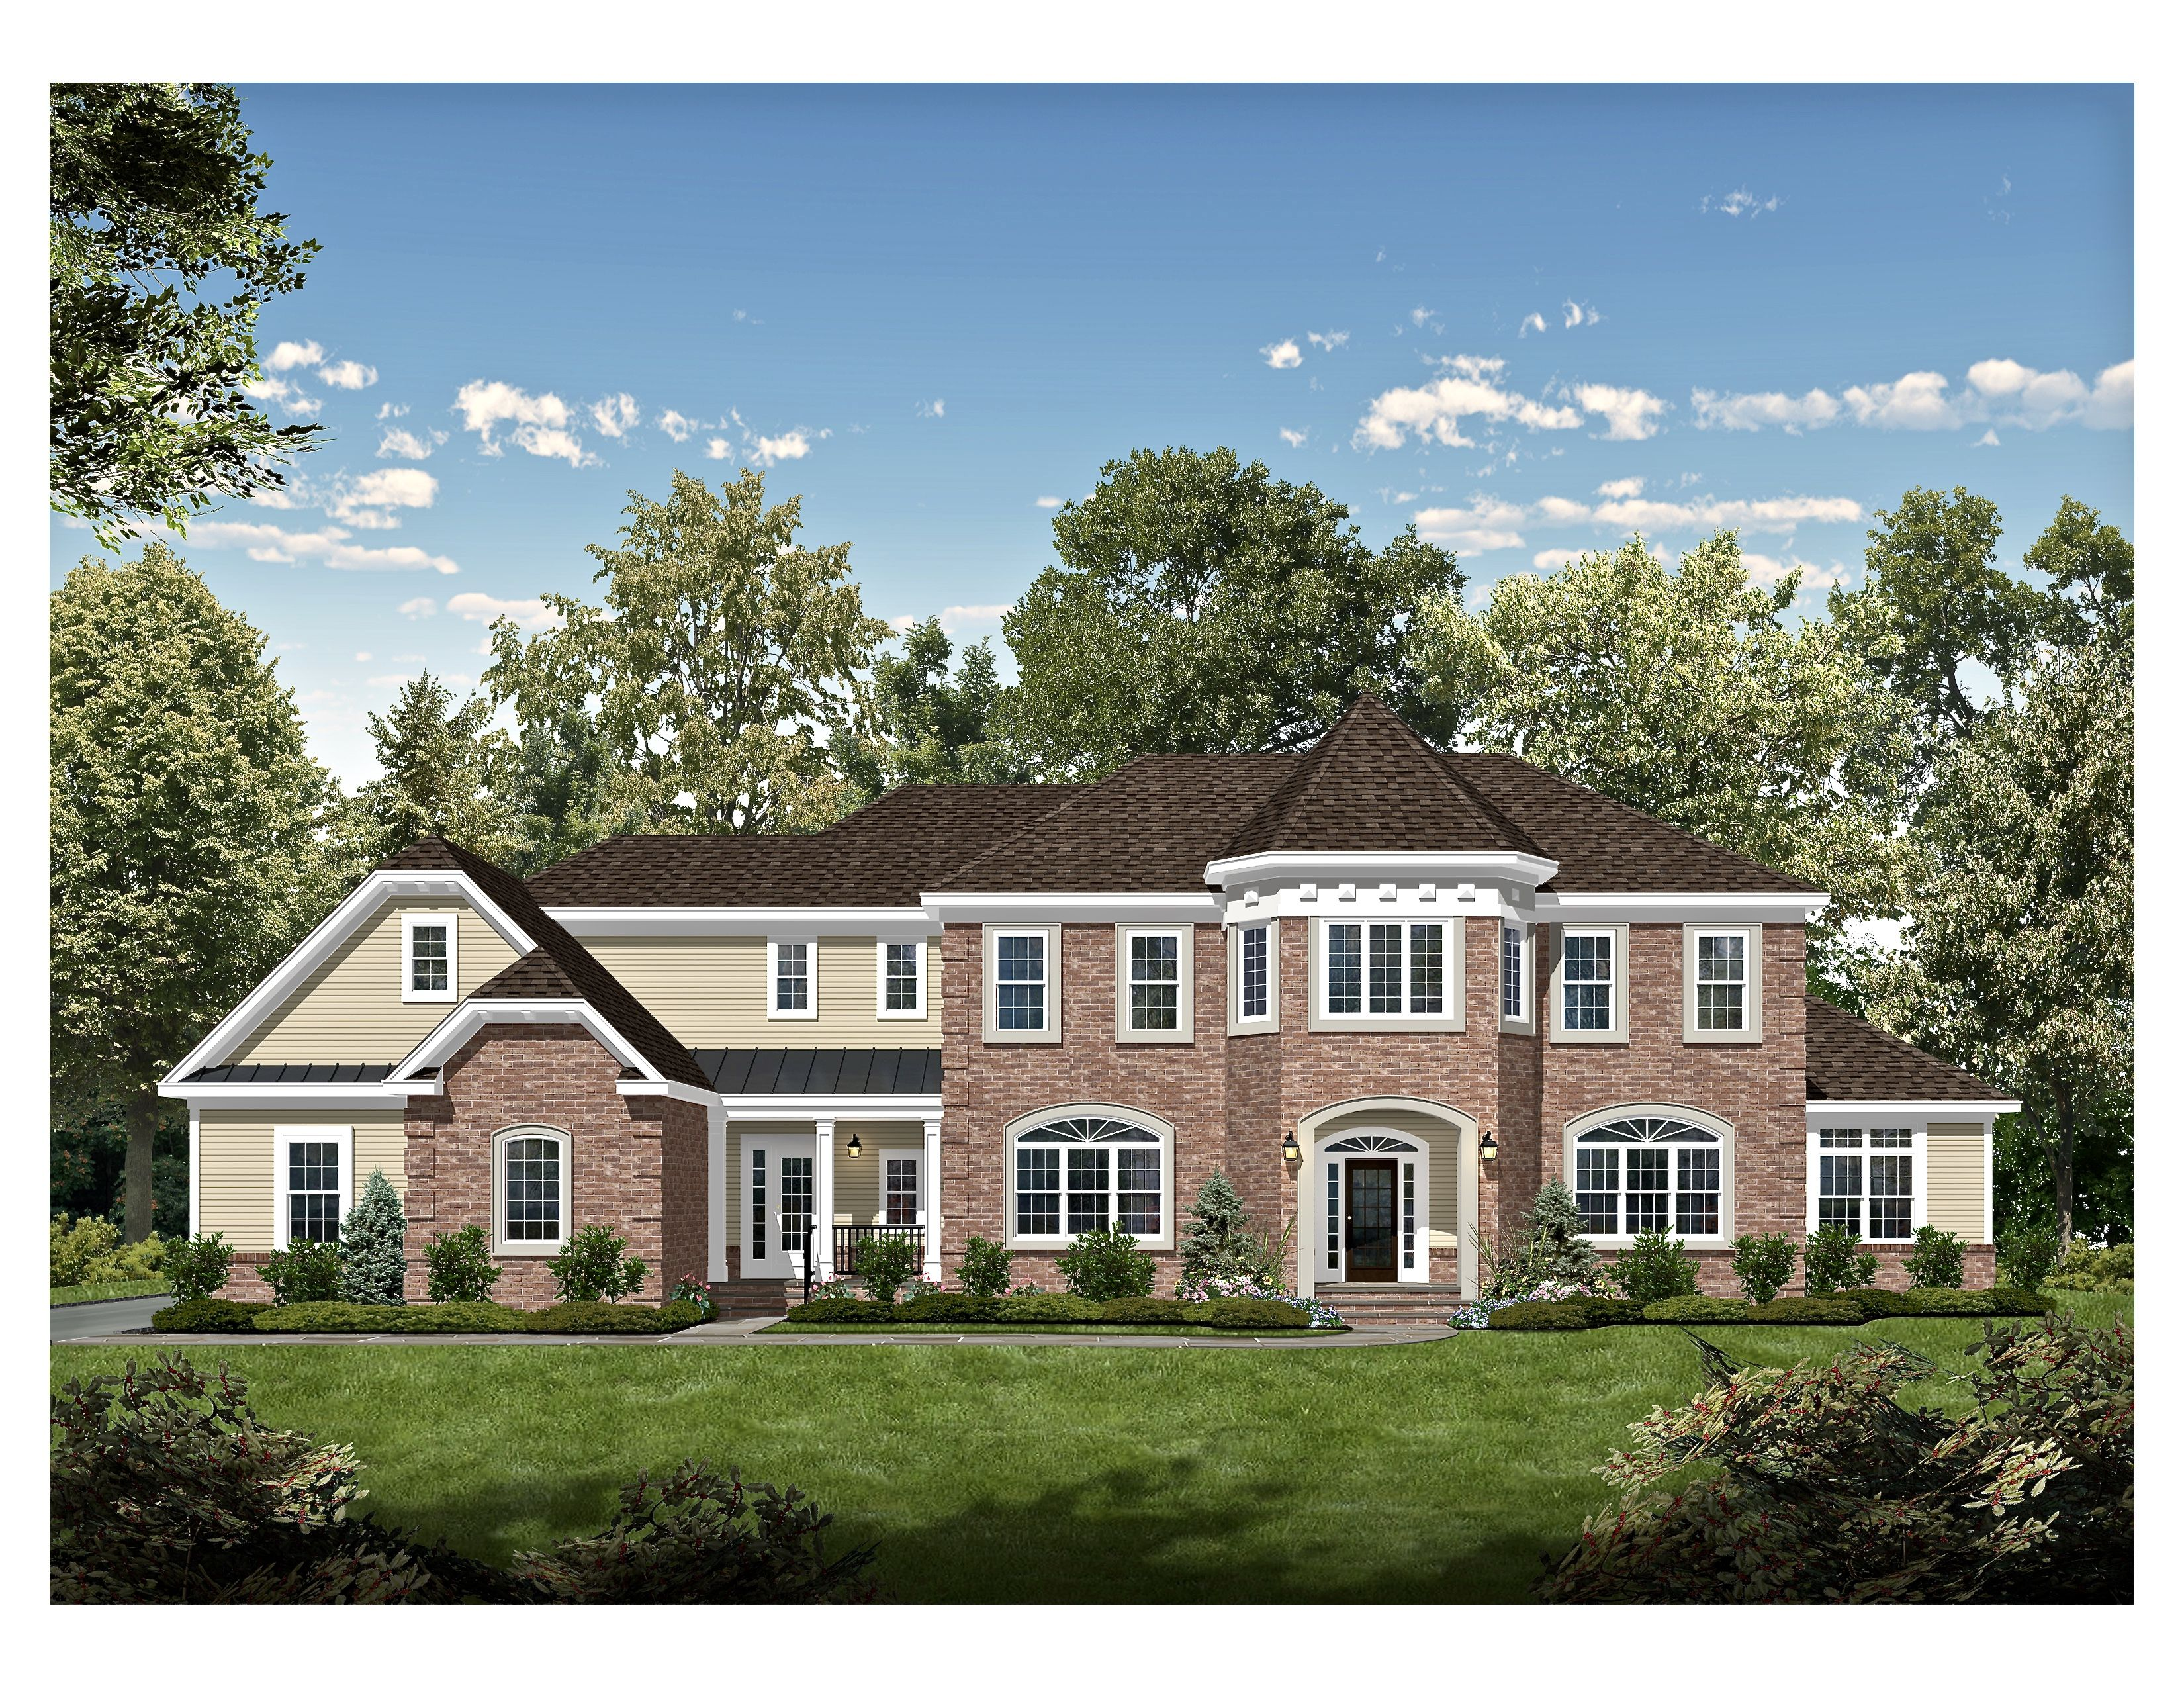 monmouth county new homes - 335 homes for sale | new home source